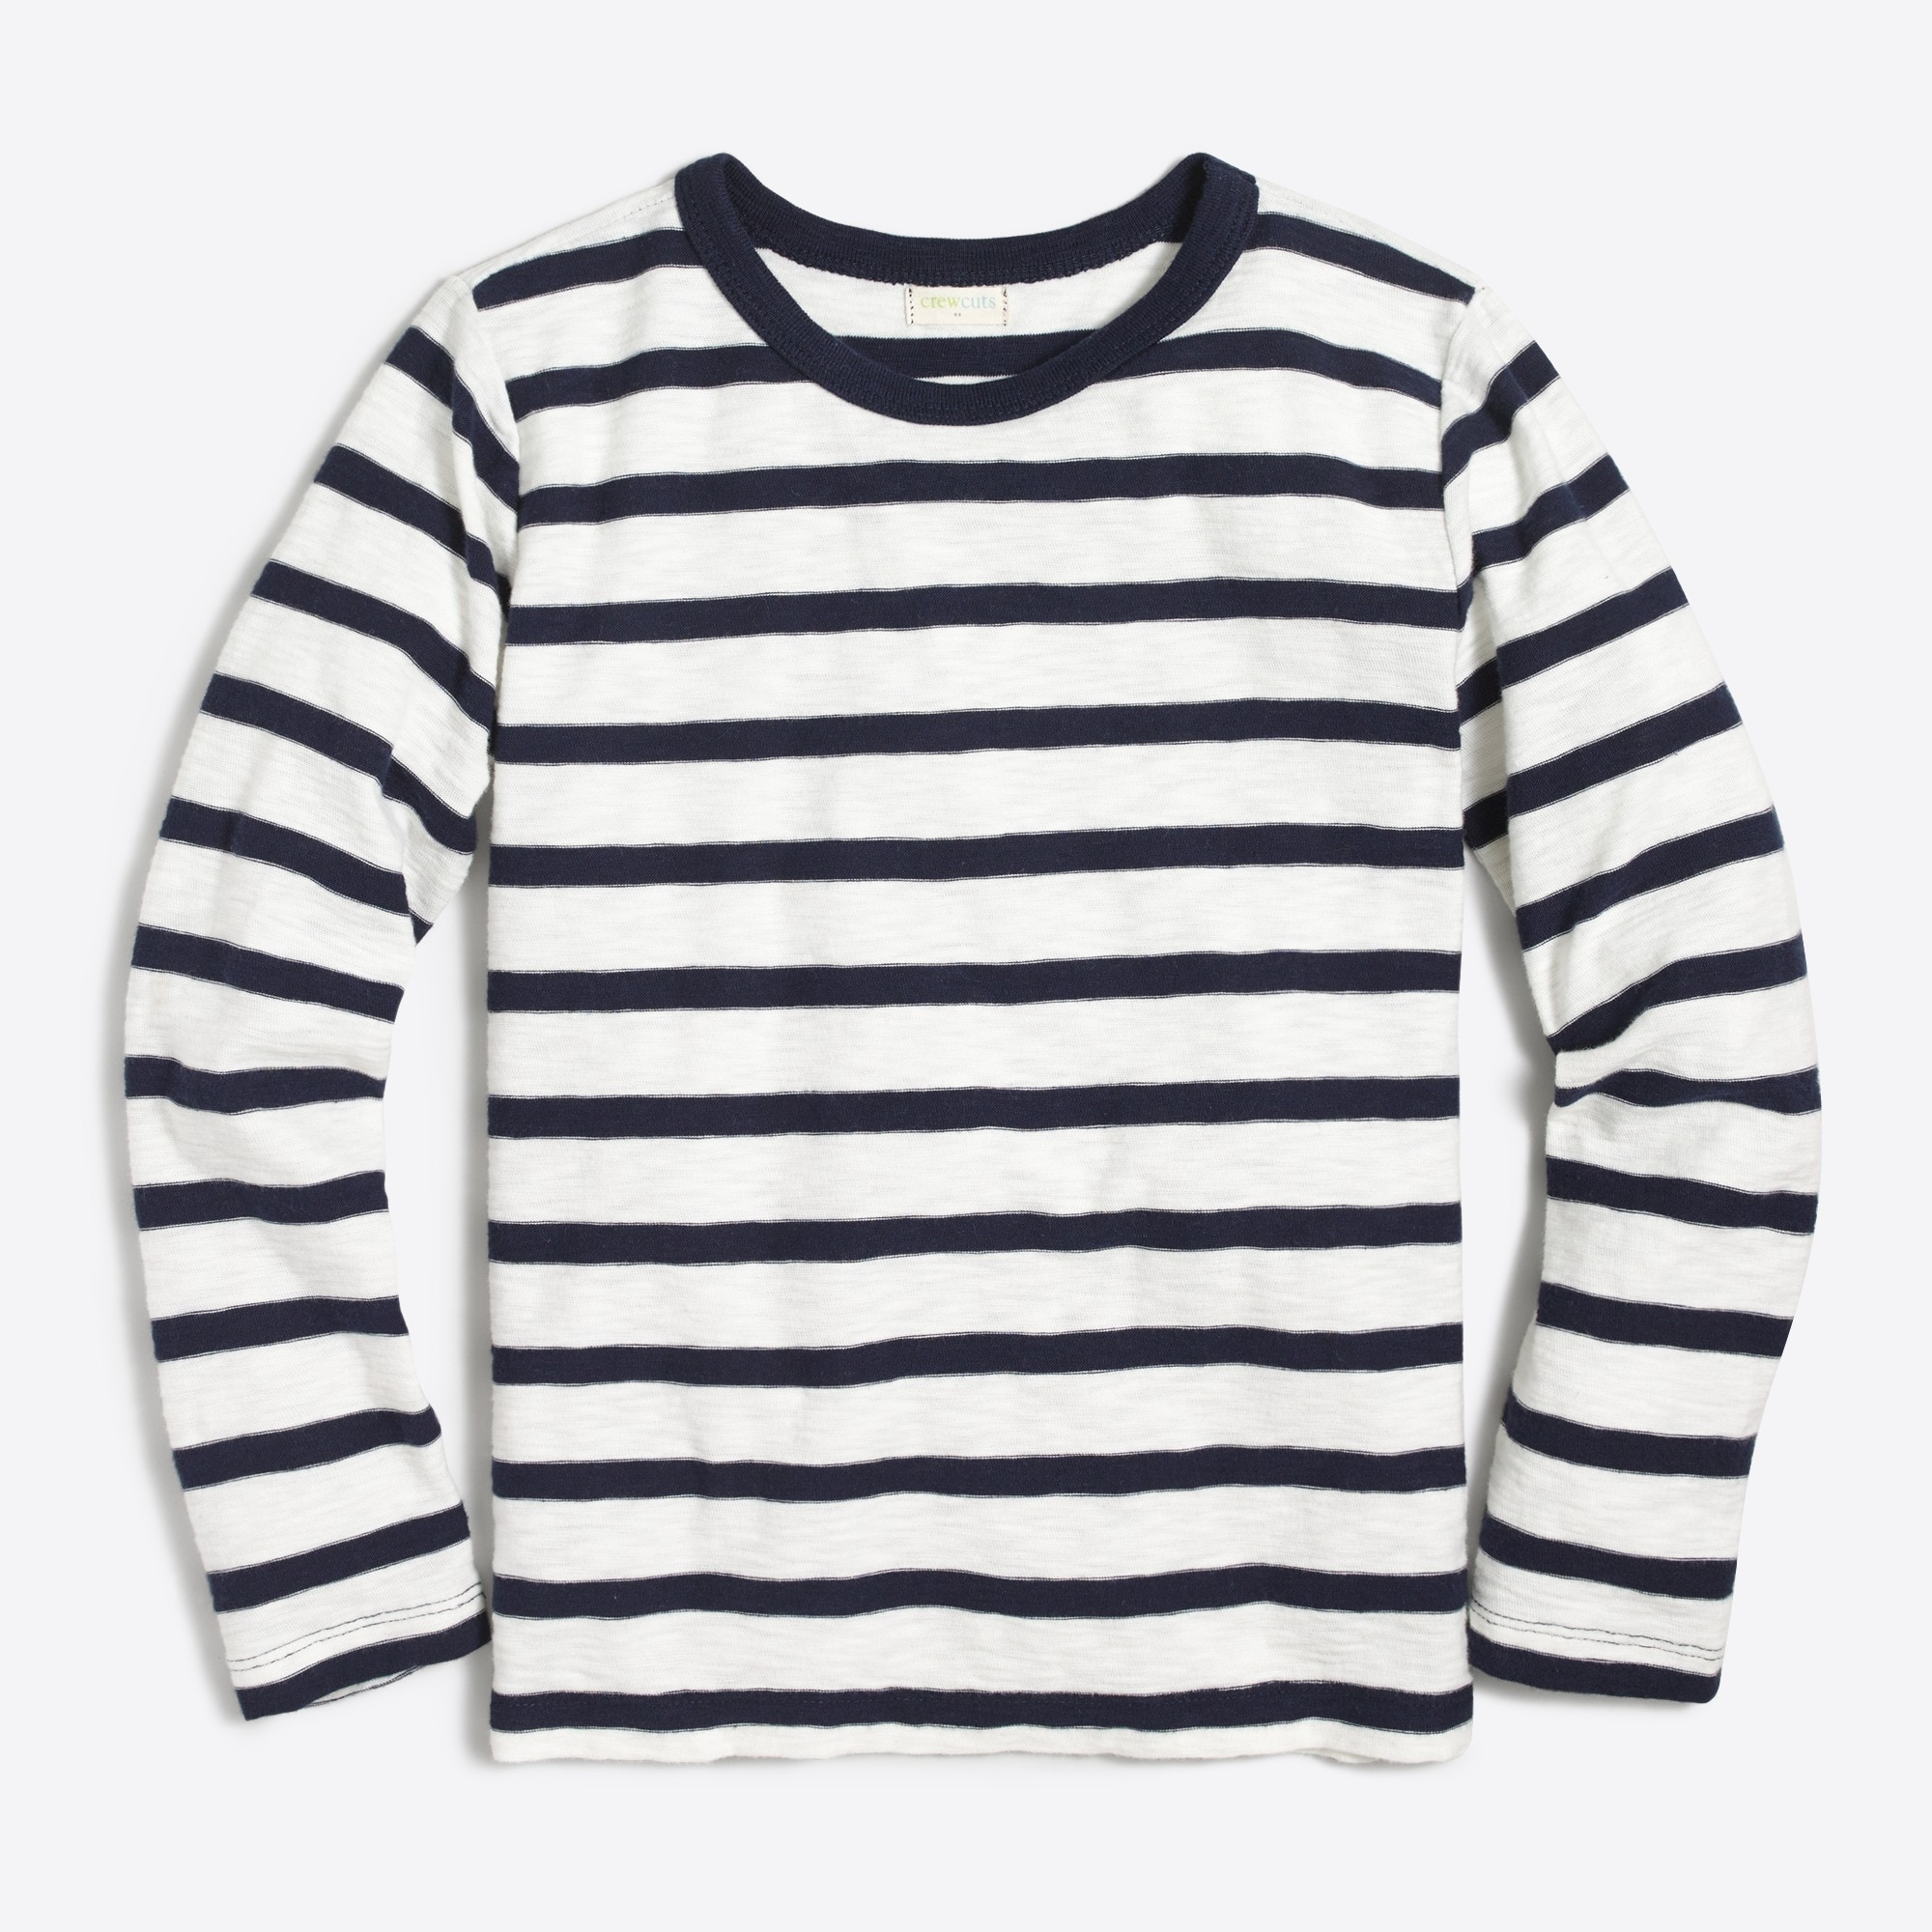 boys' long-sleeve striped t-shirt : factoryboys stripes & novelty